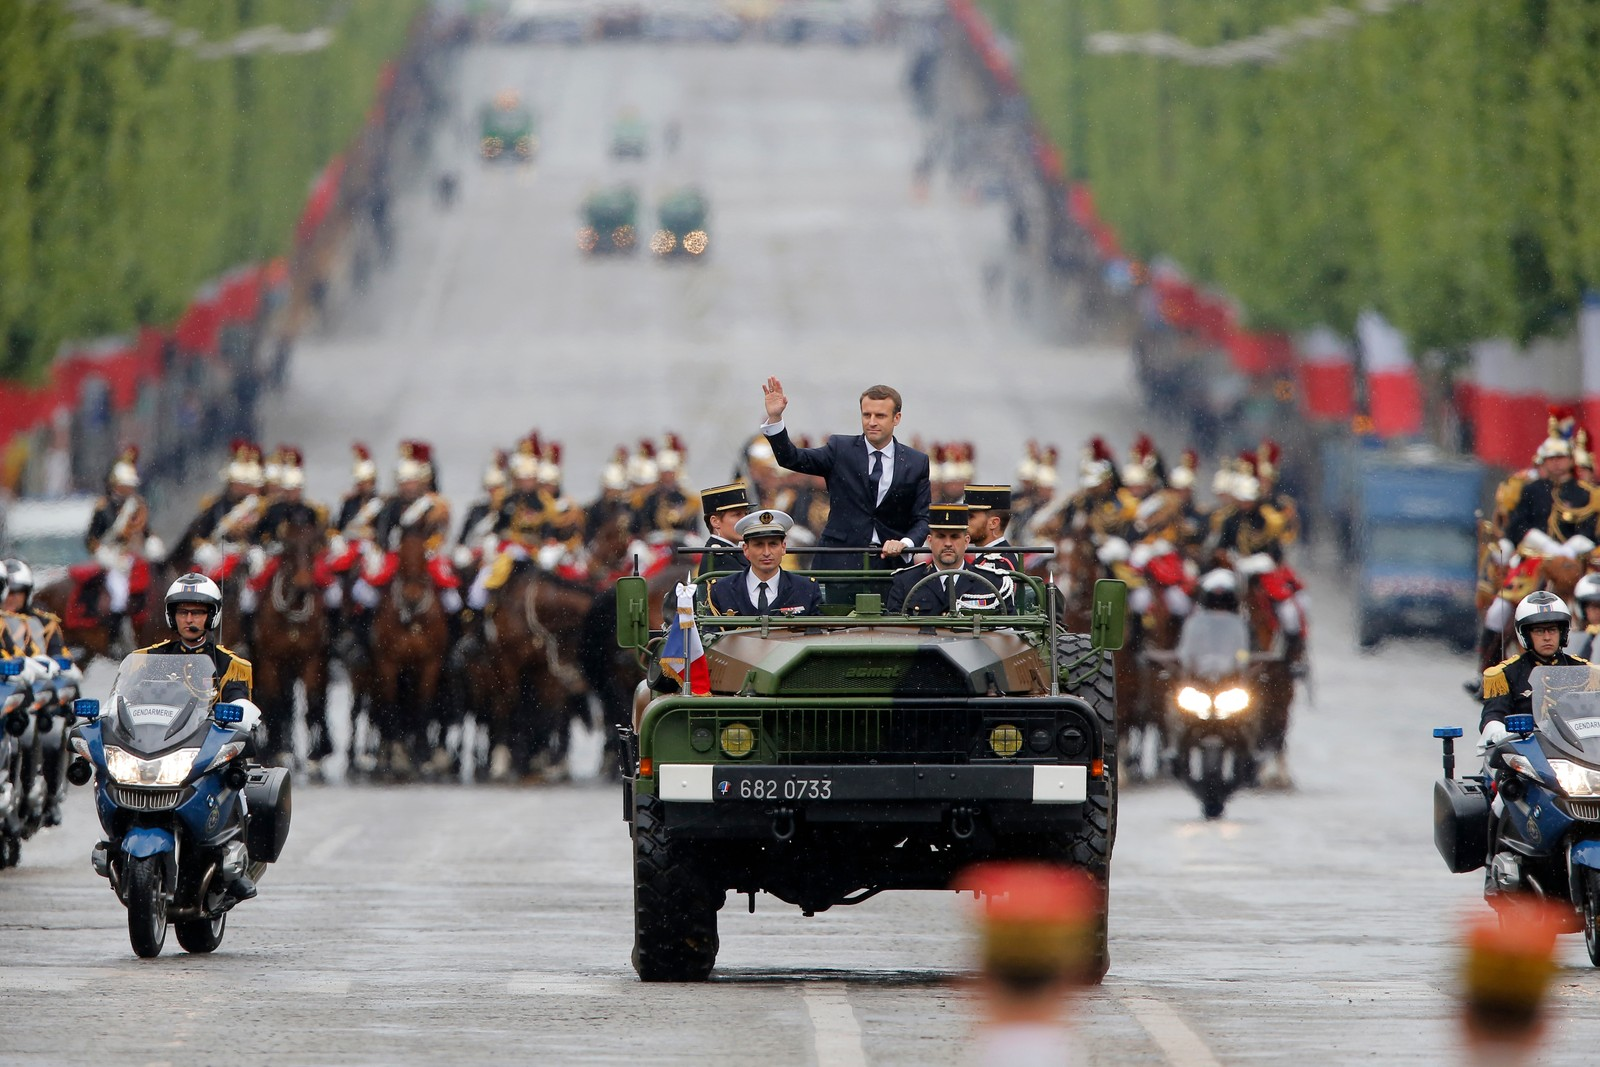 France President Emmanuel Macron New French President Emmanuel Macron waves from a military vehicle as he rides on the Champs Elysees avenue towards the Arc de Triomphe in Paris, France, Sunday, May 14, 2017. (AP Photo/Michel Euler, POOL) Emmanuel Macron